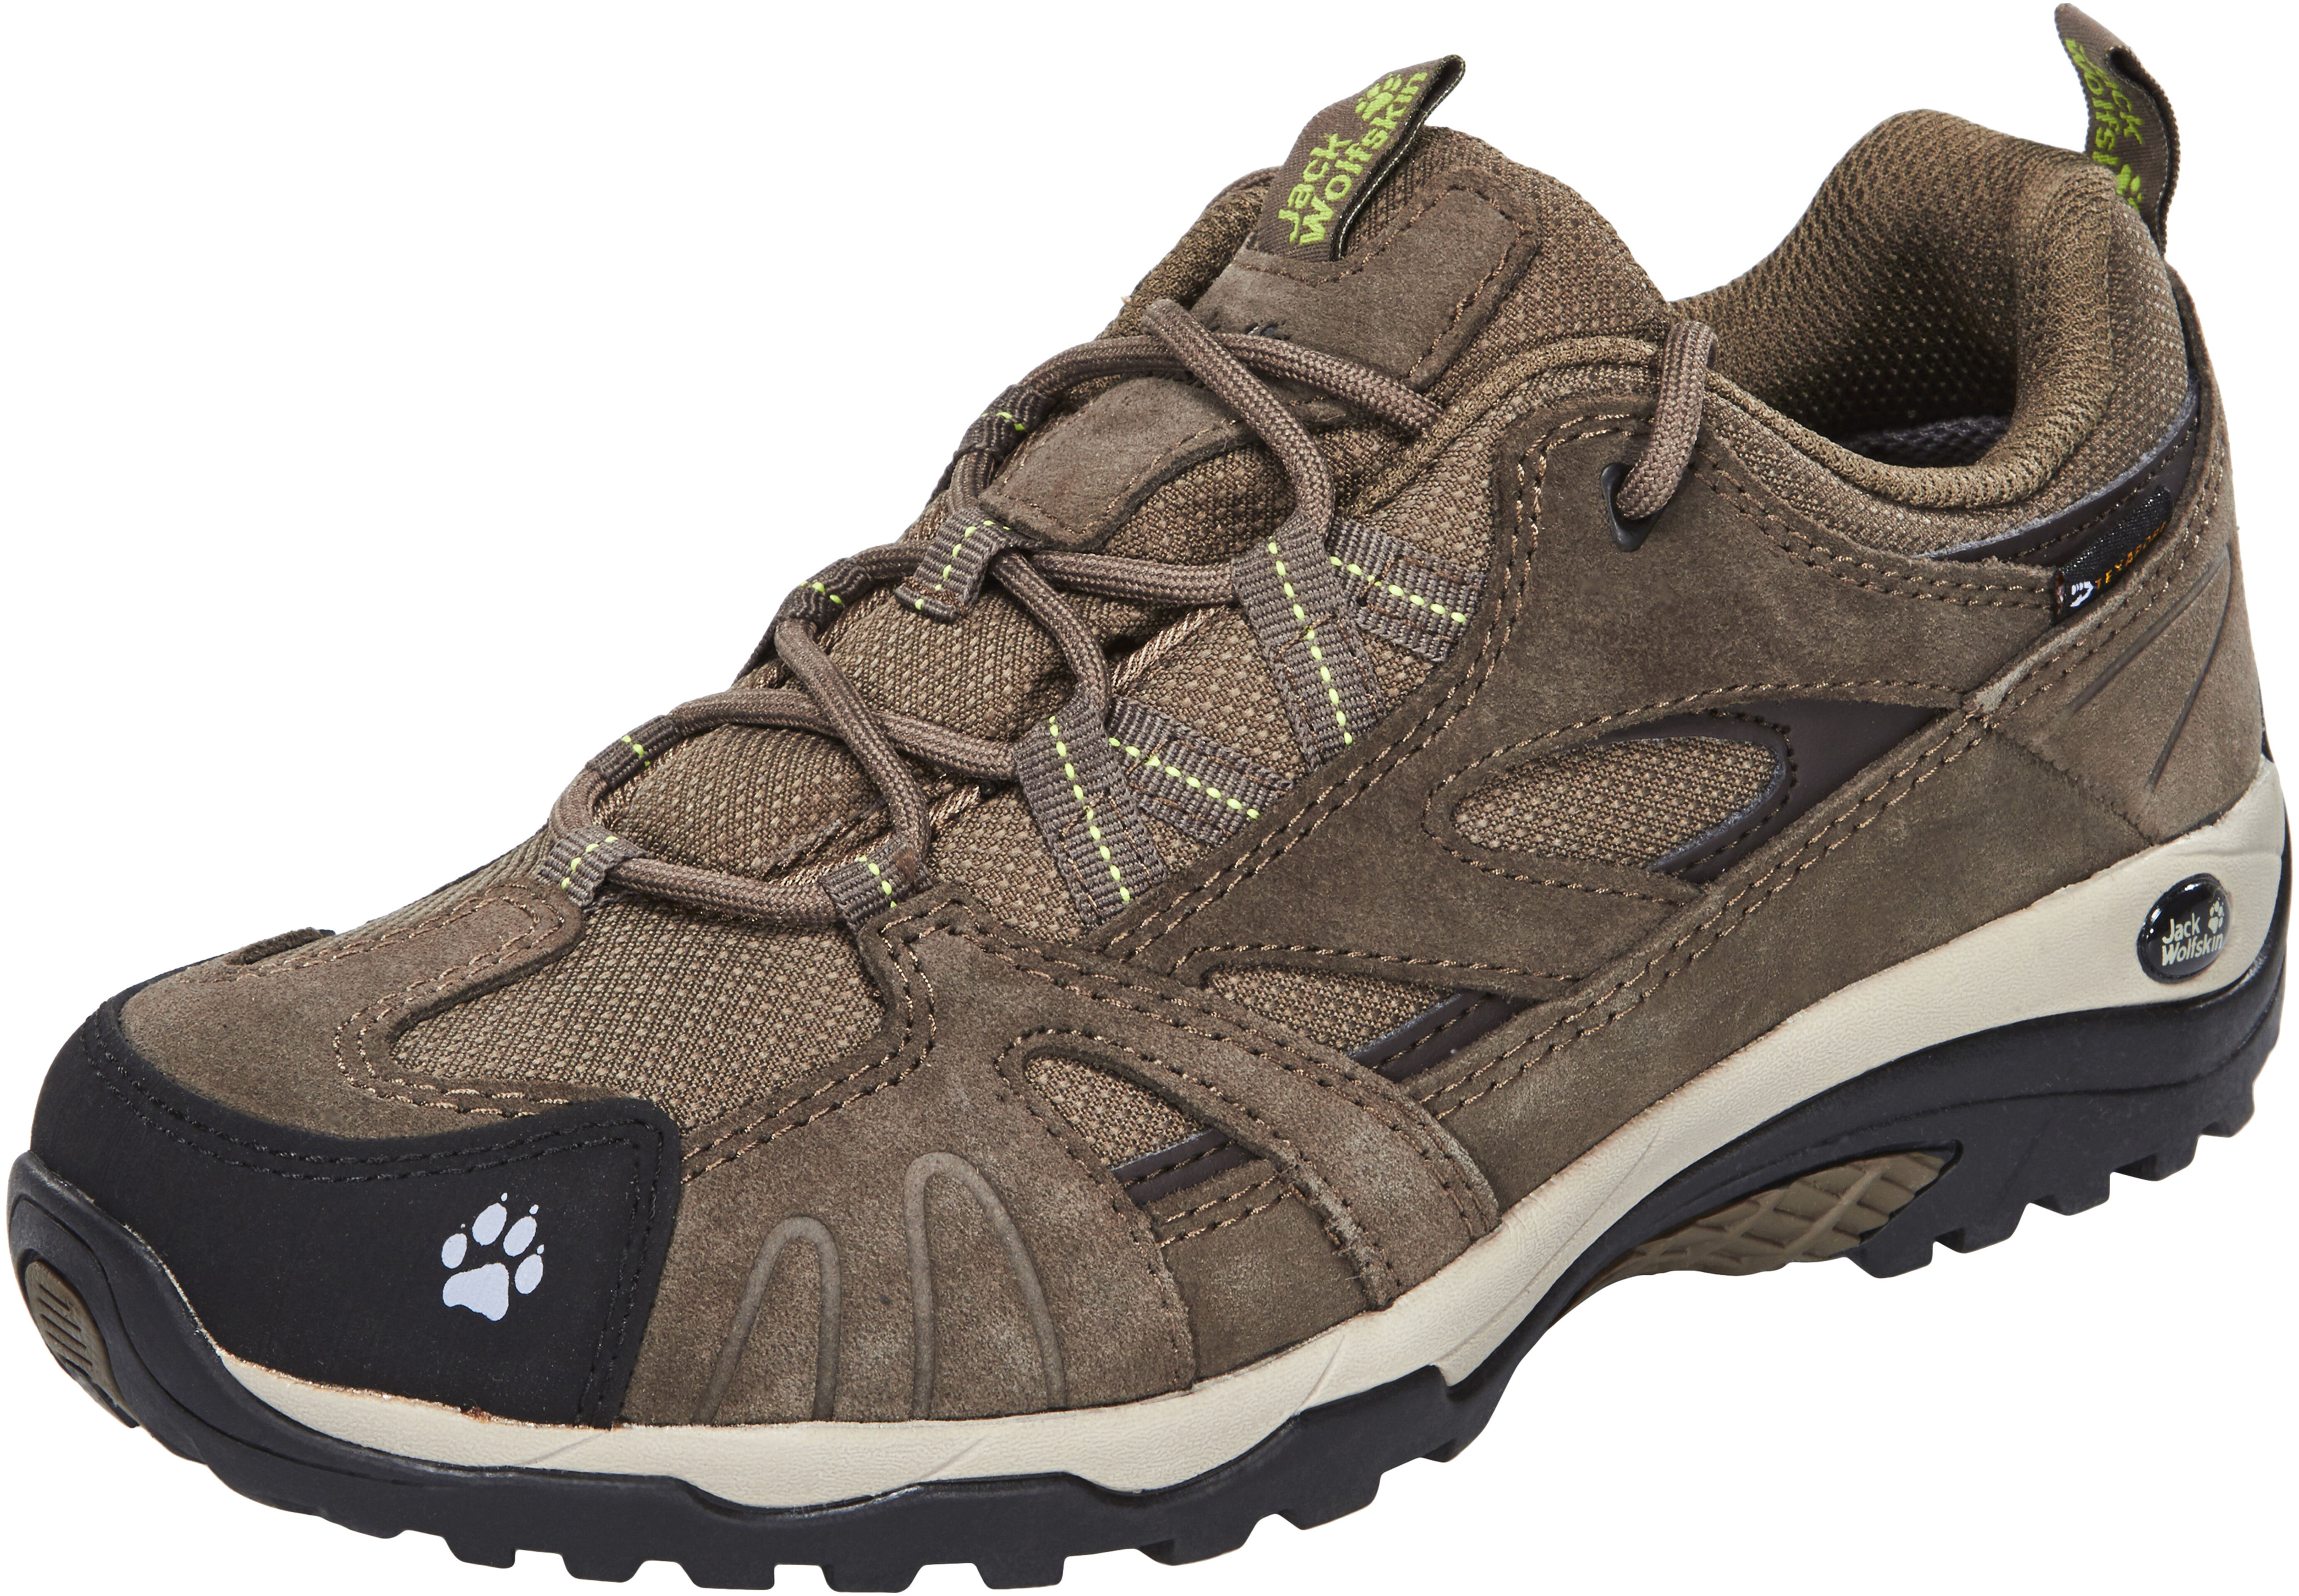 c15b7fccec Jack Wolfskin Vojo Hike Texapore Shoes Women beige/brown at ...